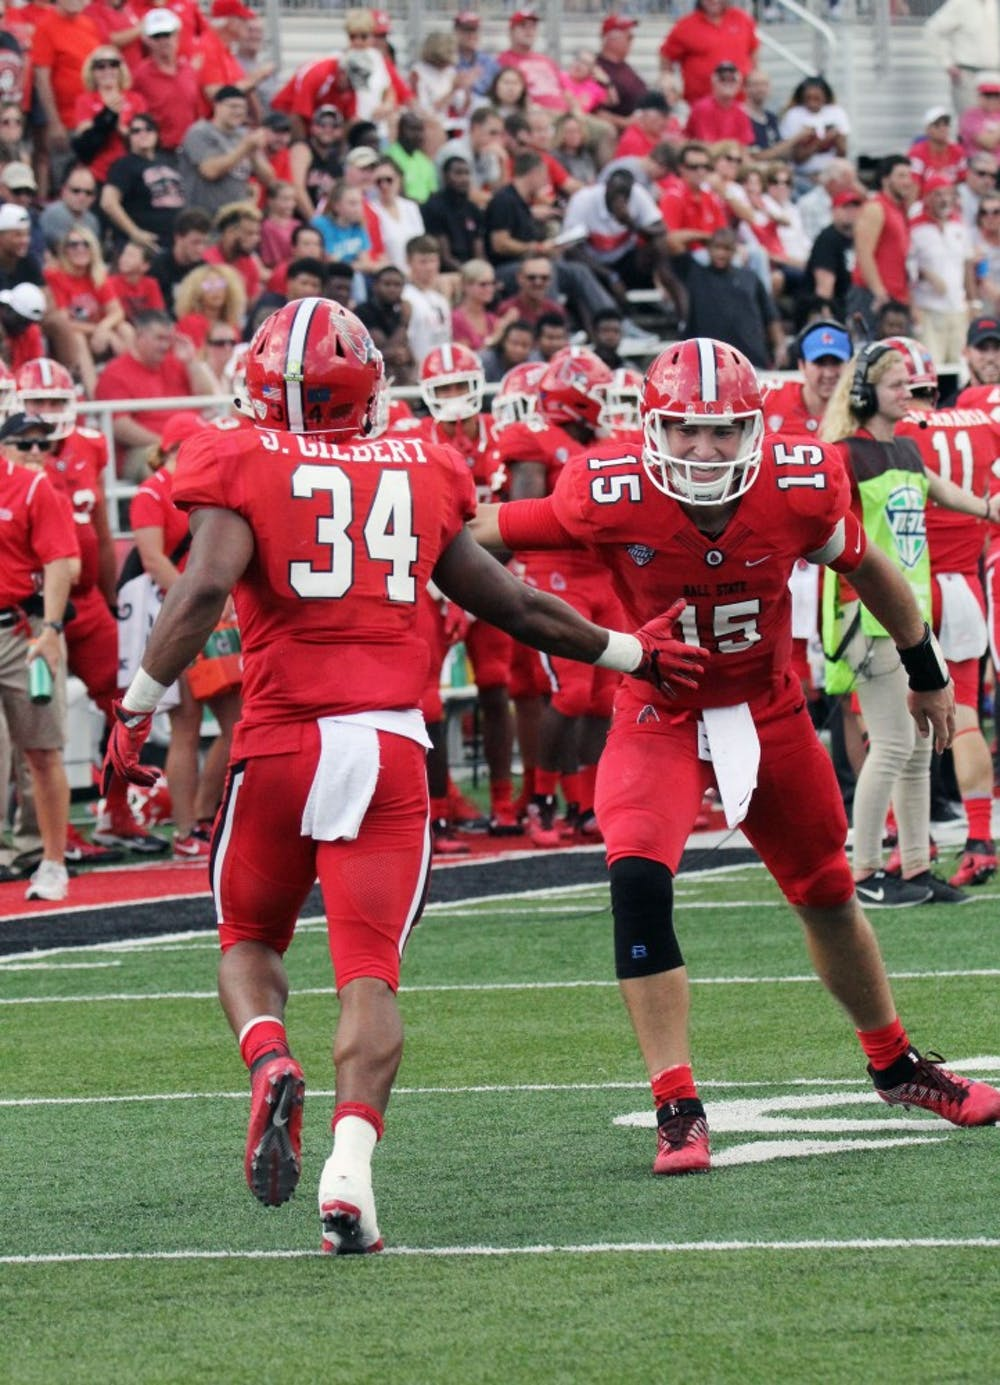 Ball State junior running back James Gilbert high-fives junior quarterback Riley Neal after scoring a touchdown in the second quarter during the Cardinals' game against Tennessee Tech on Sept. 16 at Scheumann Stadium. Gilbert had 17 receiving yards. Paige Grider, DN